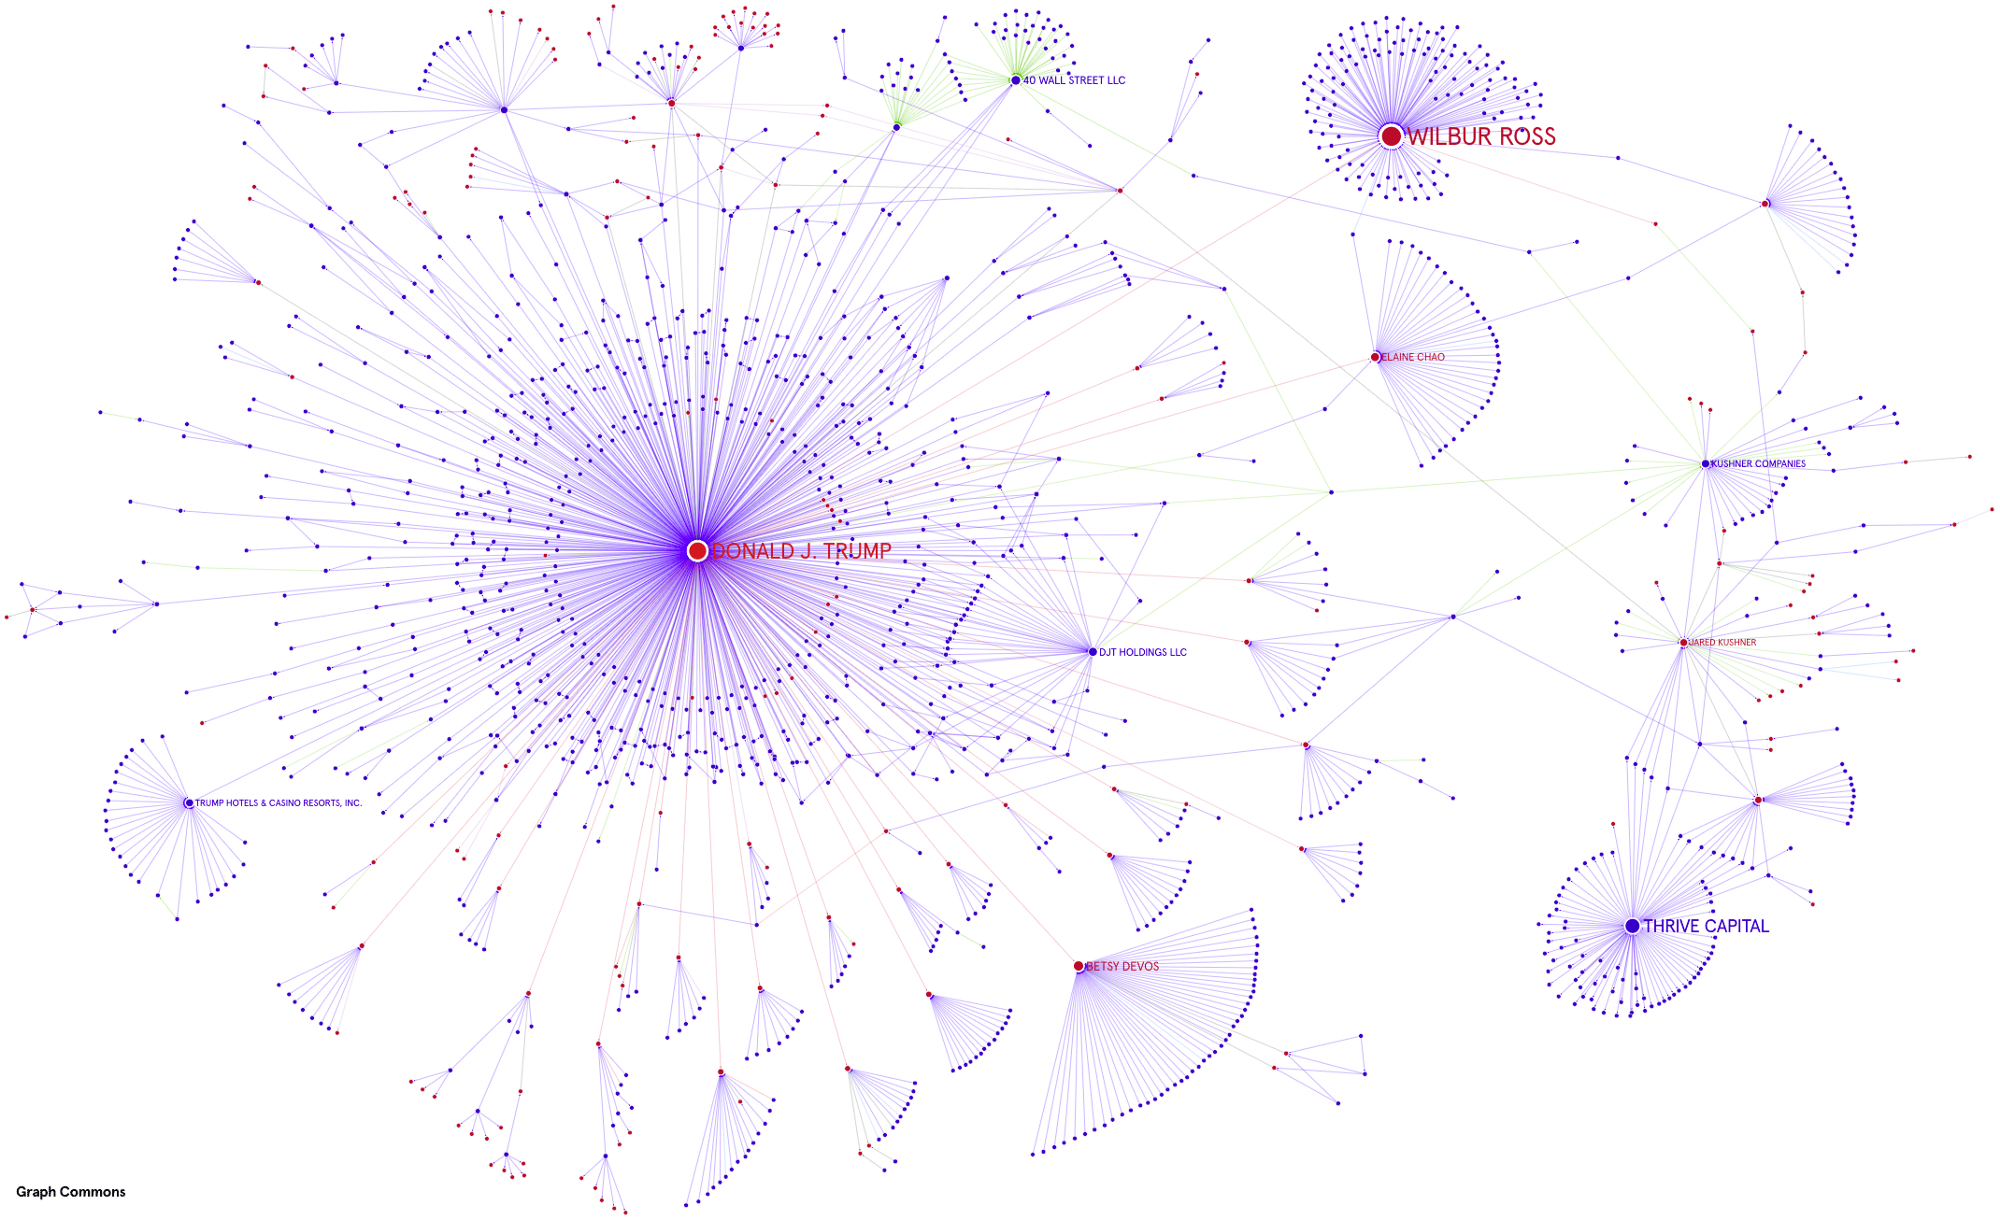 Mapping the network of power relations around Donald Trump.